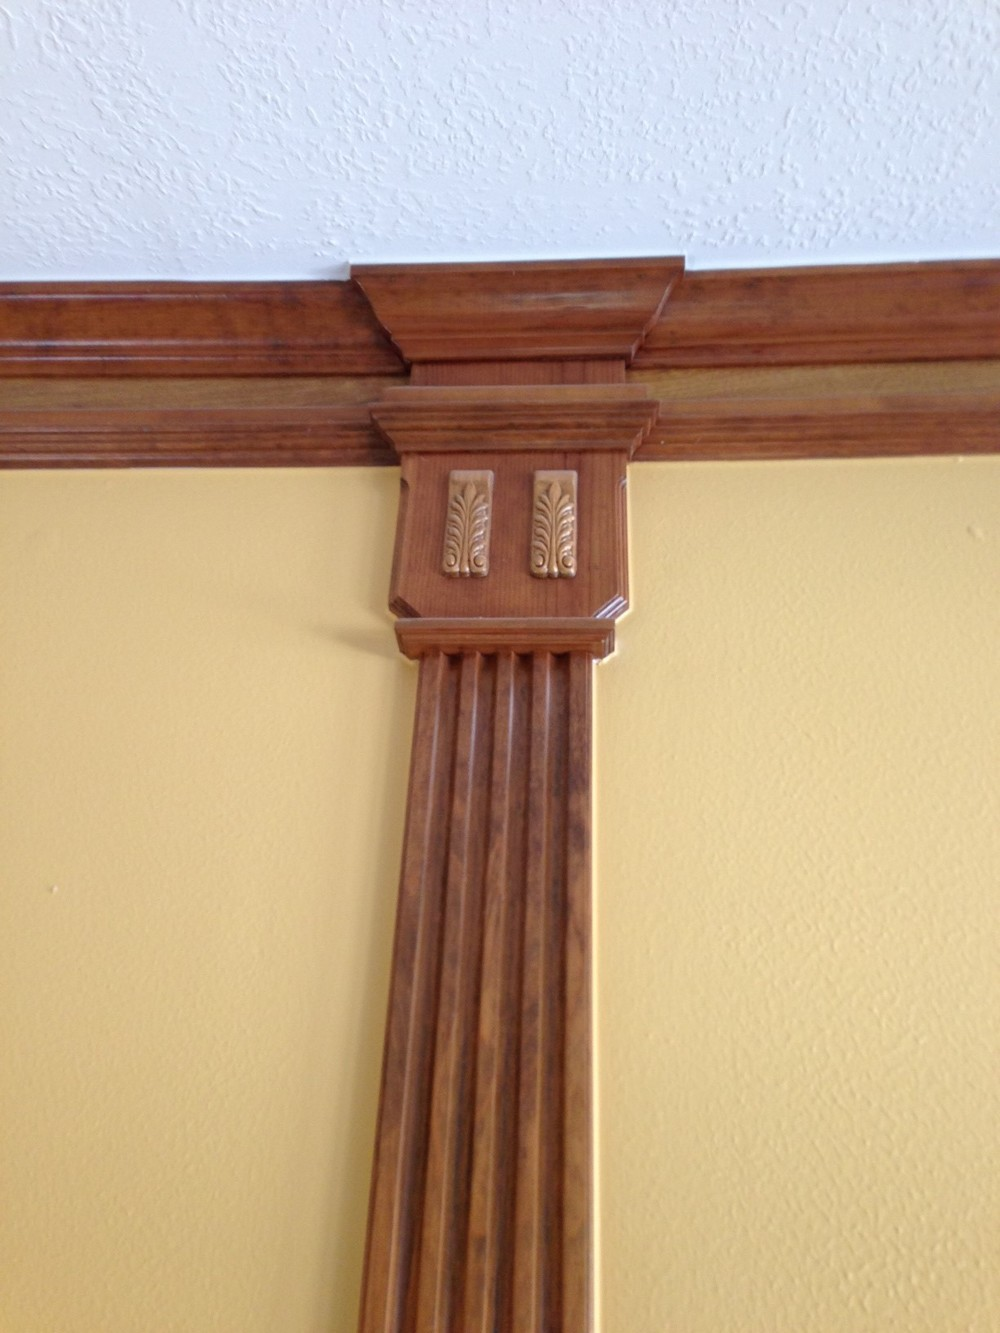 Mouldings can be a beautiful thing.However, many times they're not.Sometimes they're bulky or puny, cheaply done, outside of the contextual style of the house, and really just don't make sense.